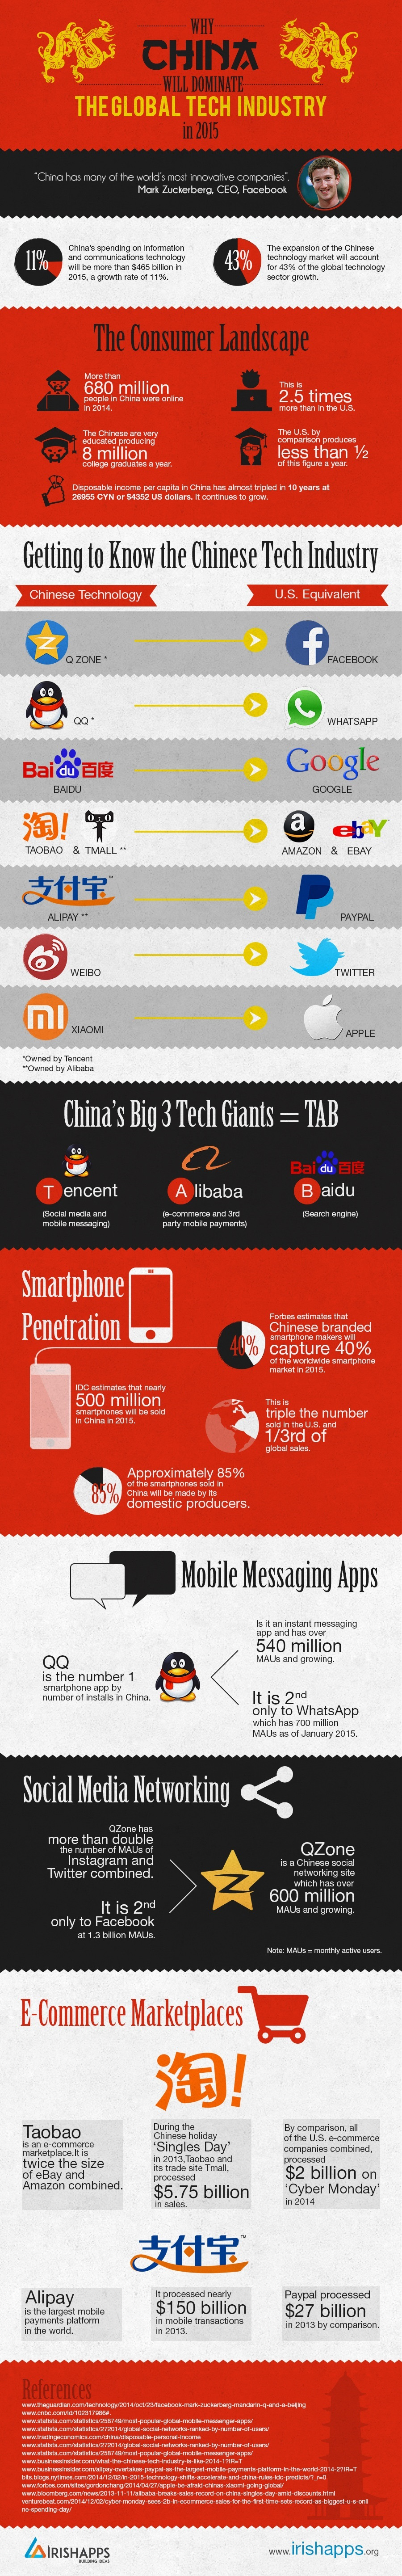 Why-China-Will-Dominate-the-Tech-Industry-in-2015